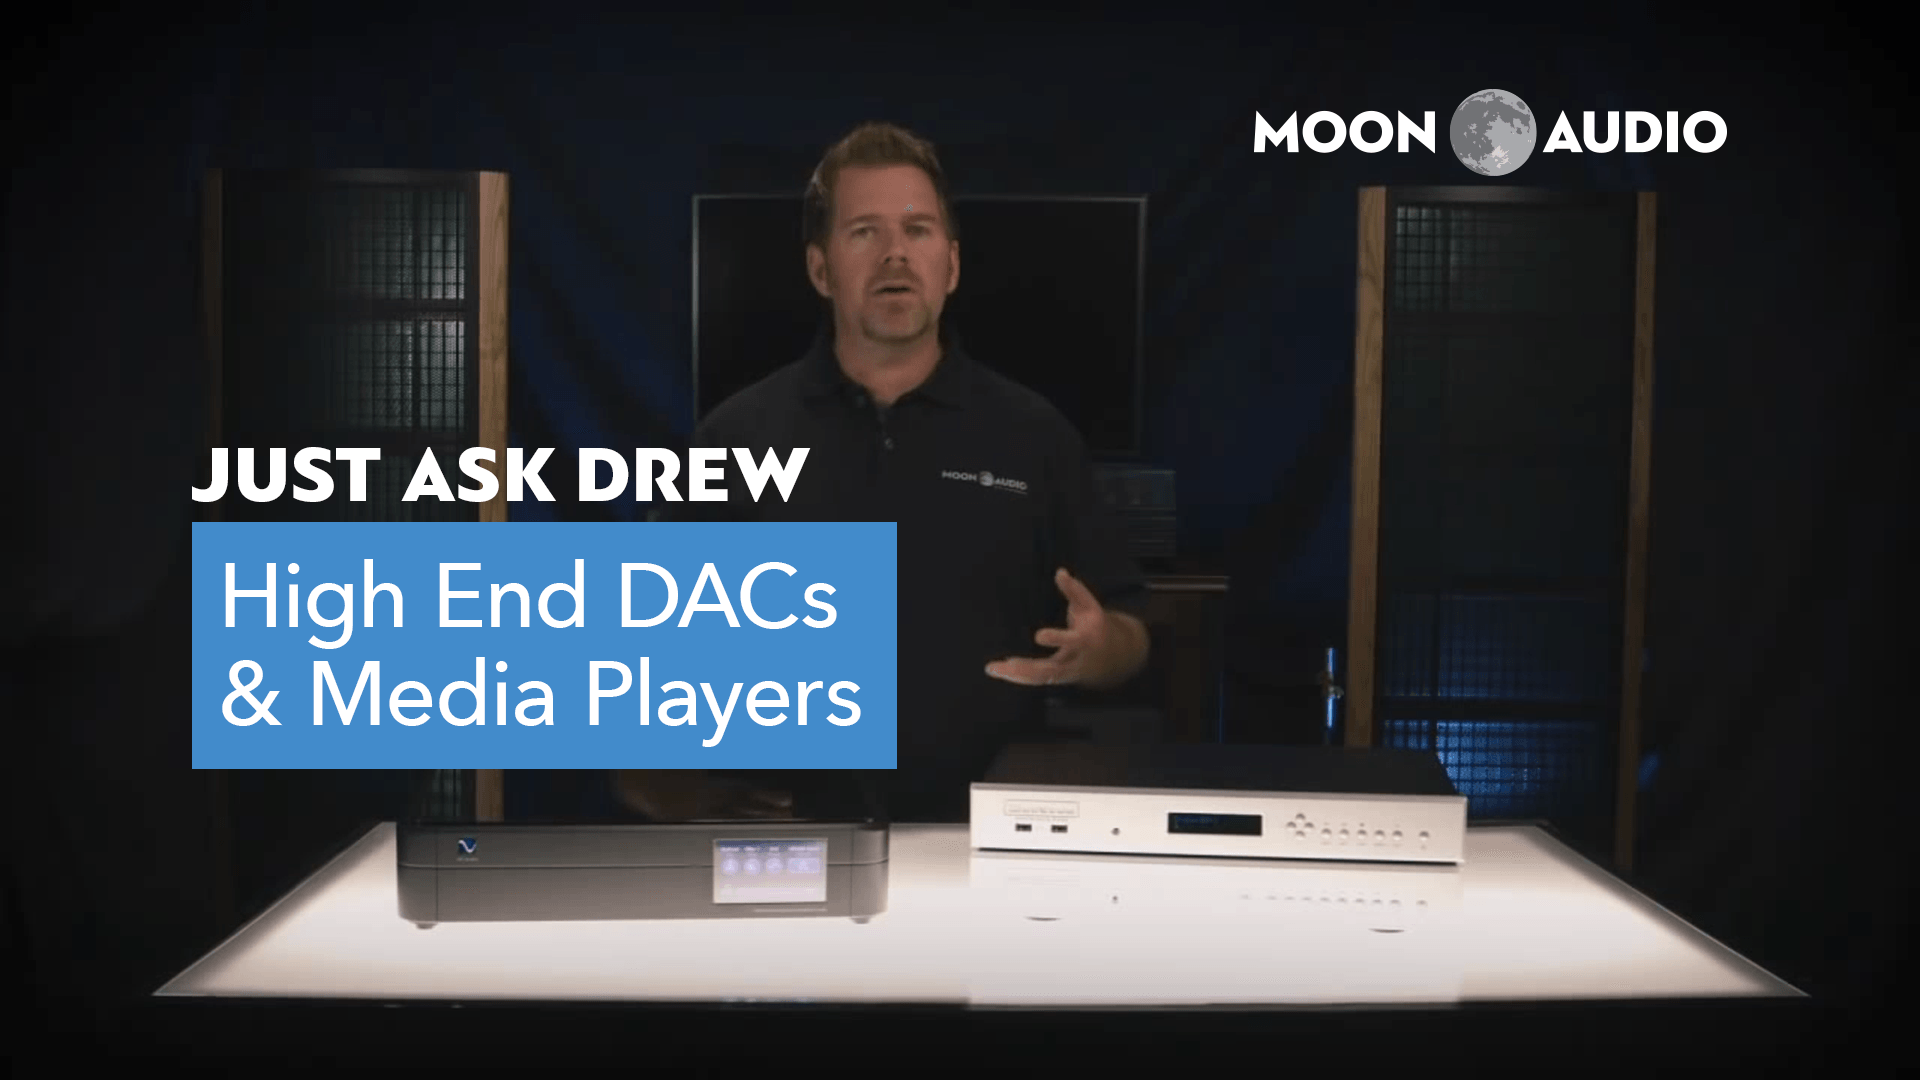 Drew Explains High End DACs and Media Players Video